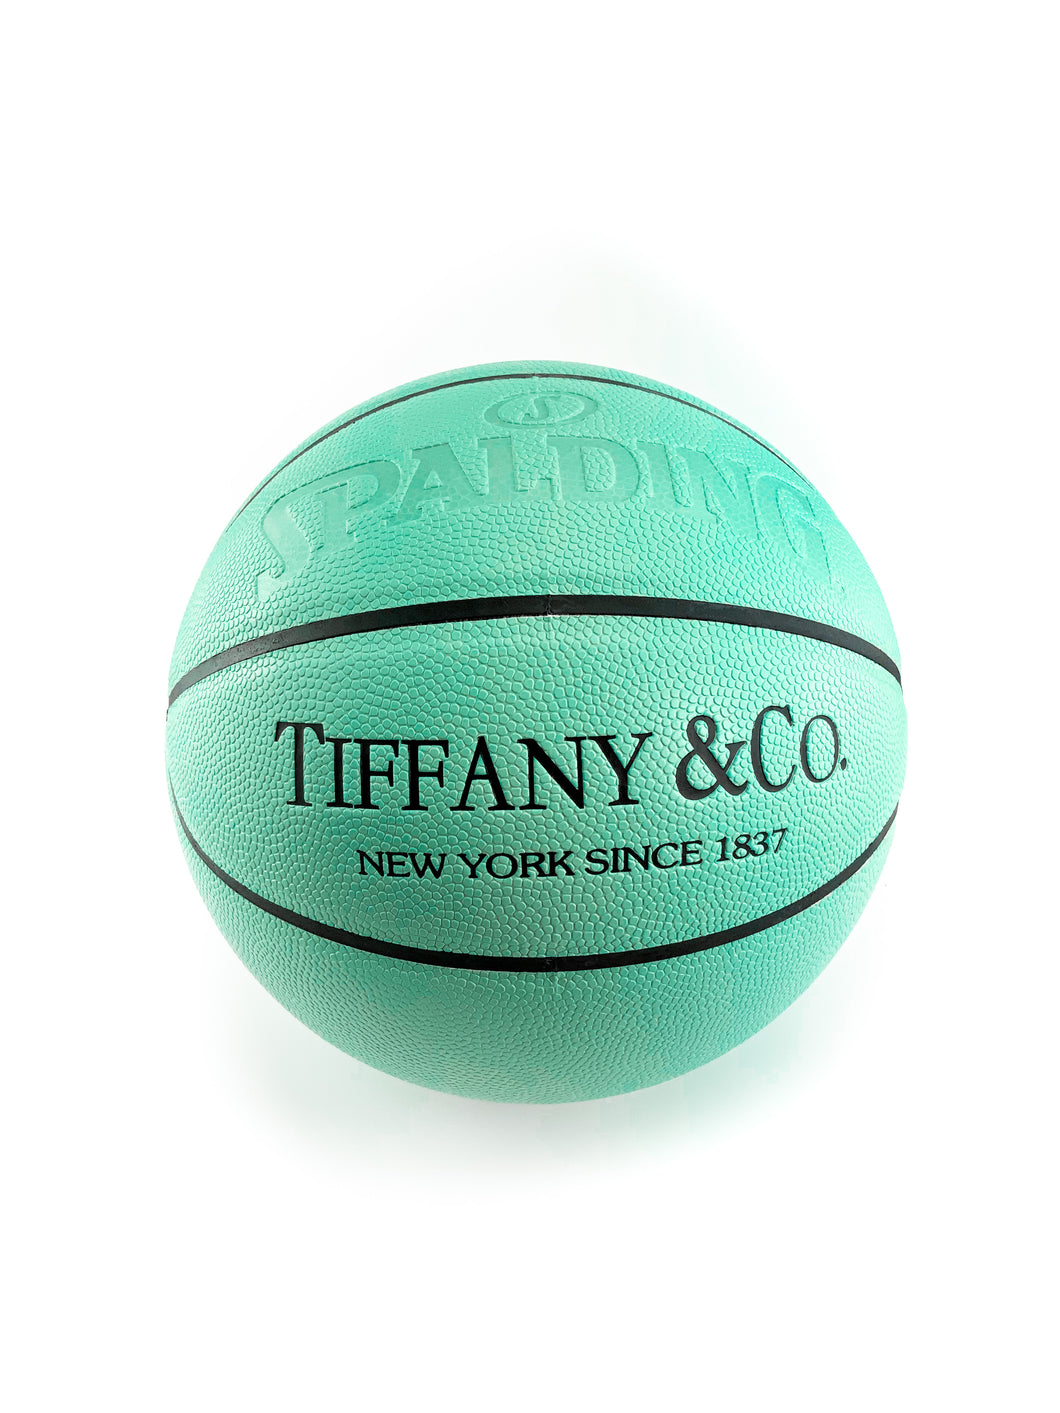 Tiffany & Co. x Spalding Basketball Replica